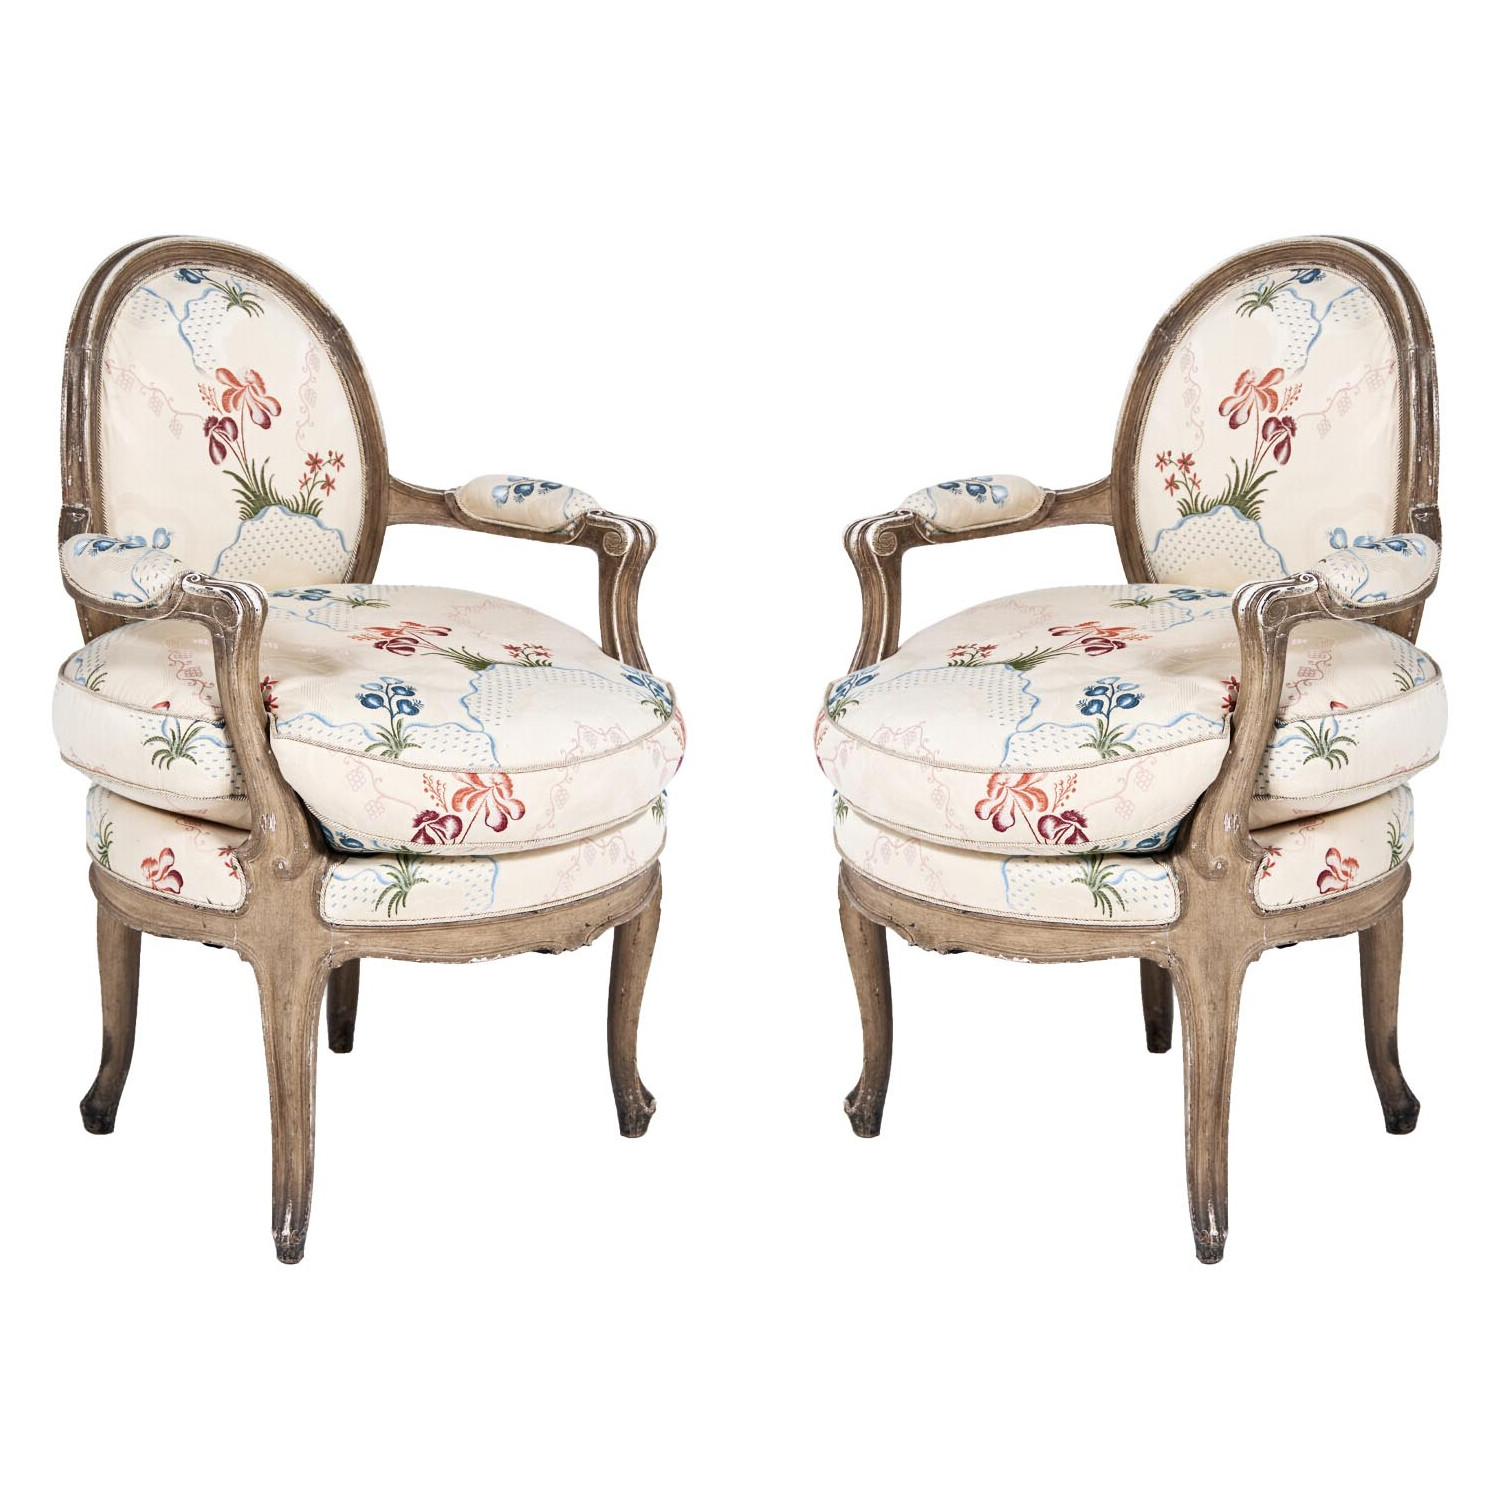 A Pair Of Louis XV Armchairs, France Circa 1800 | Antique And Art Exchange